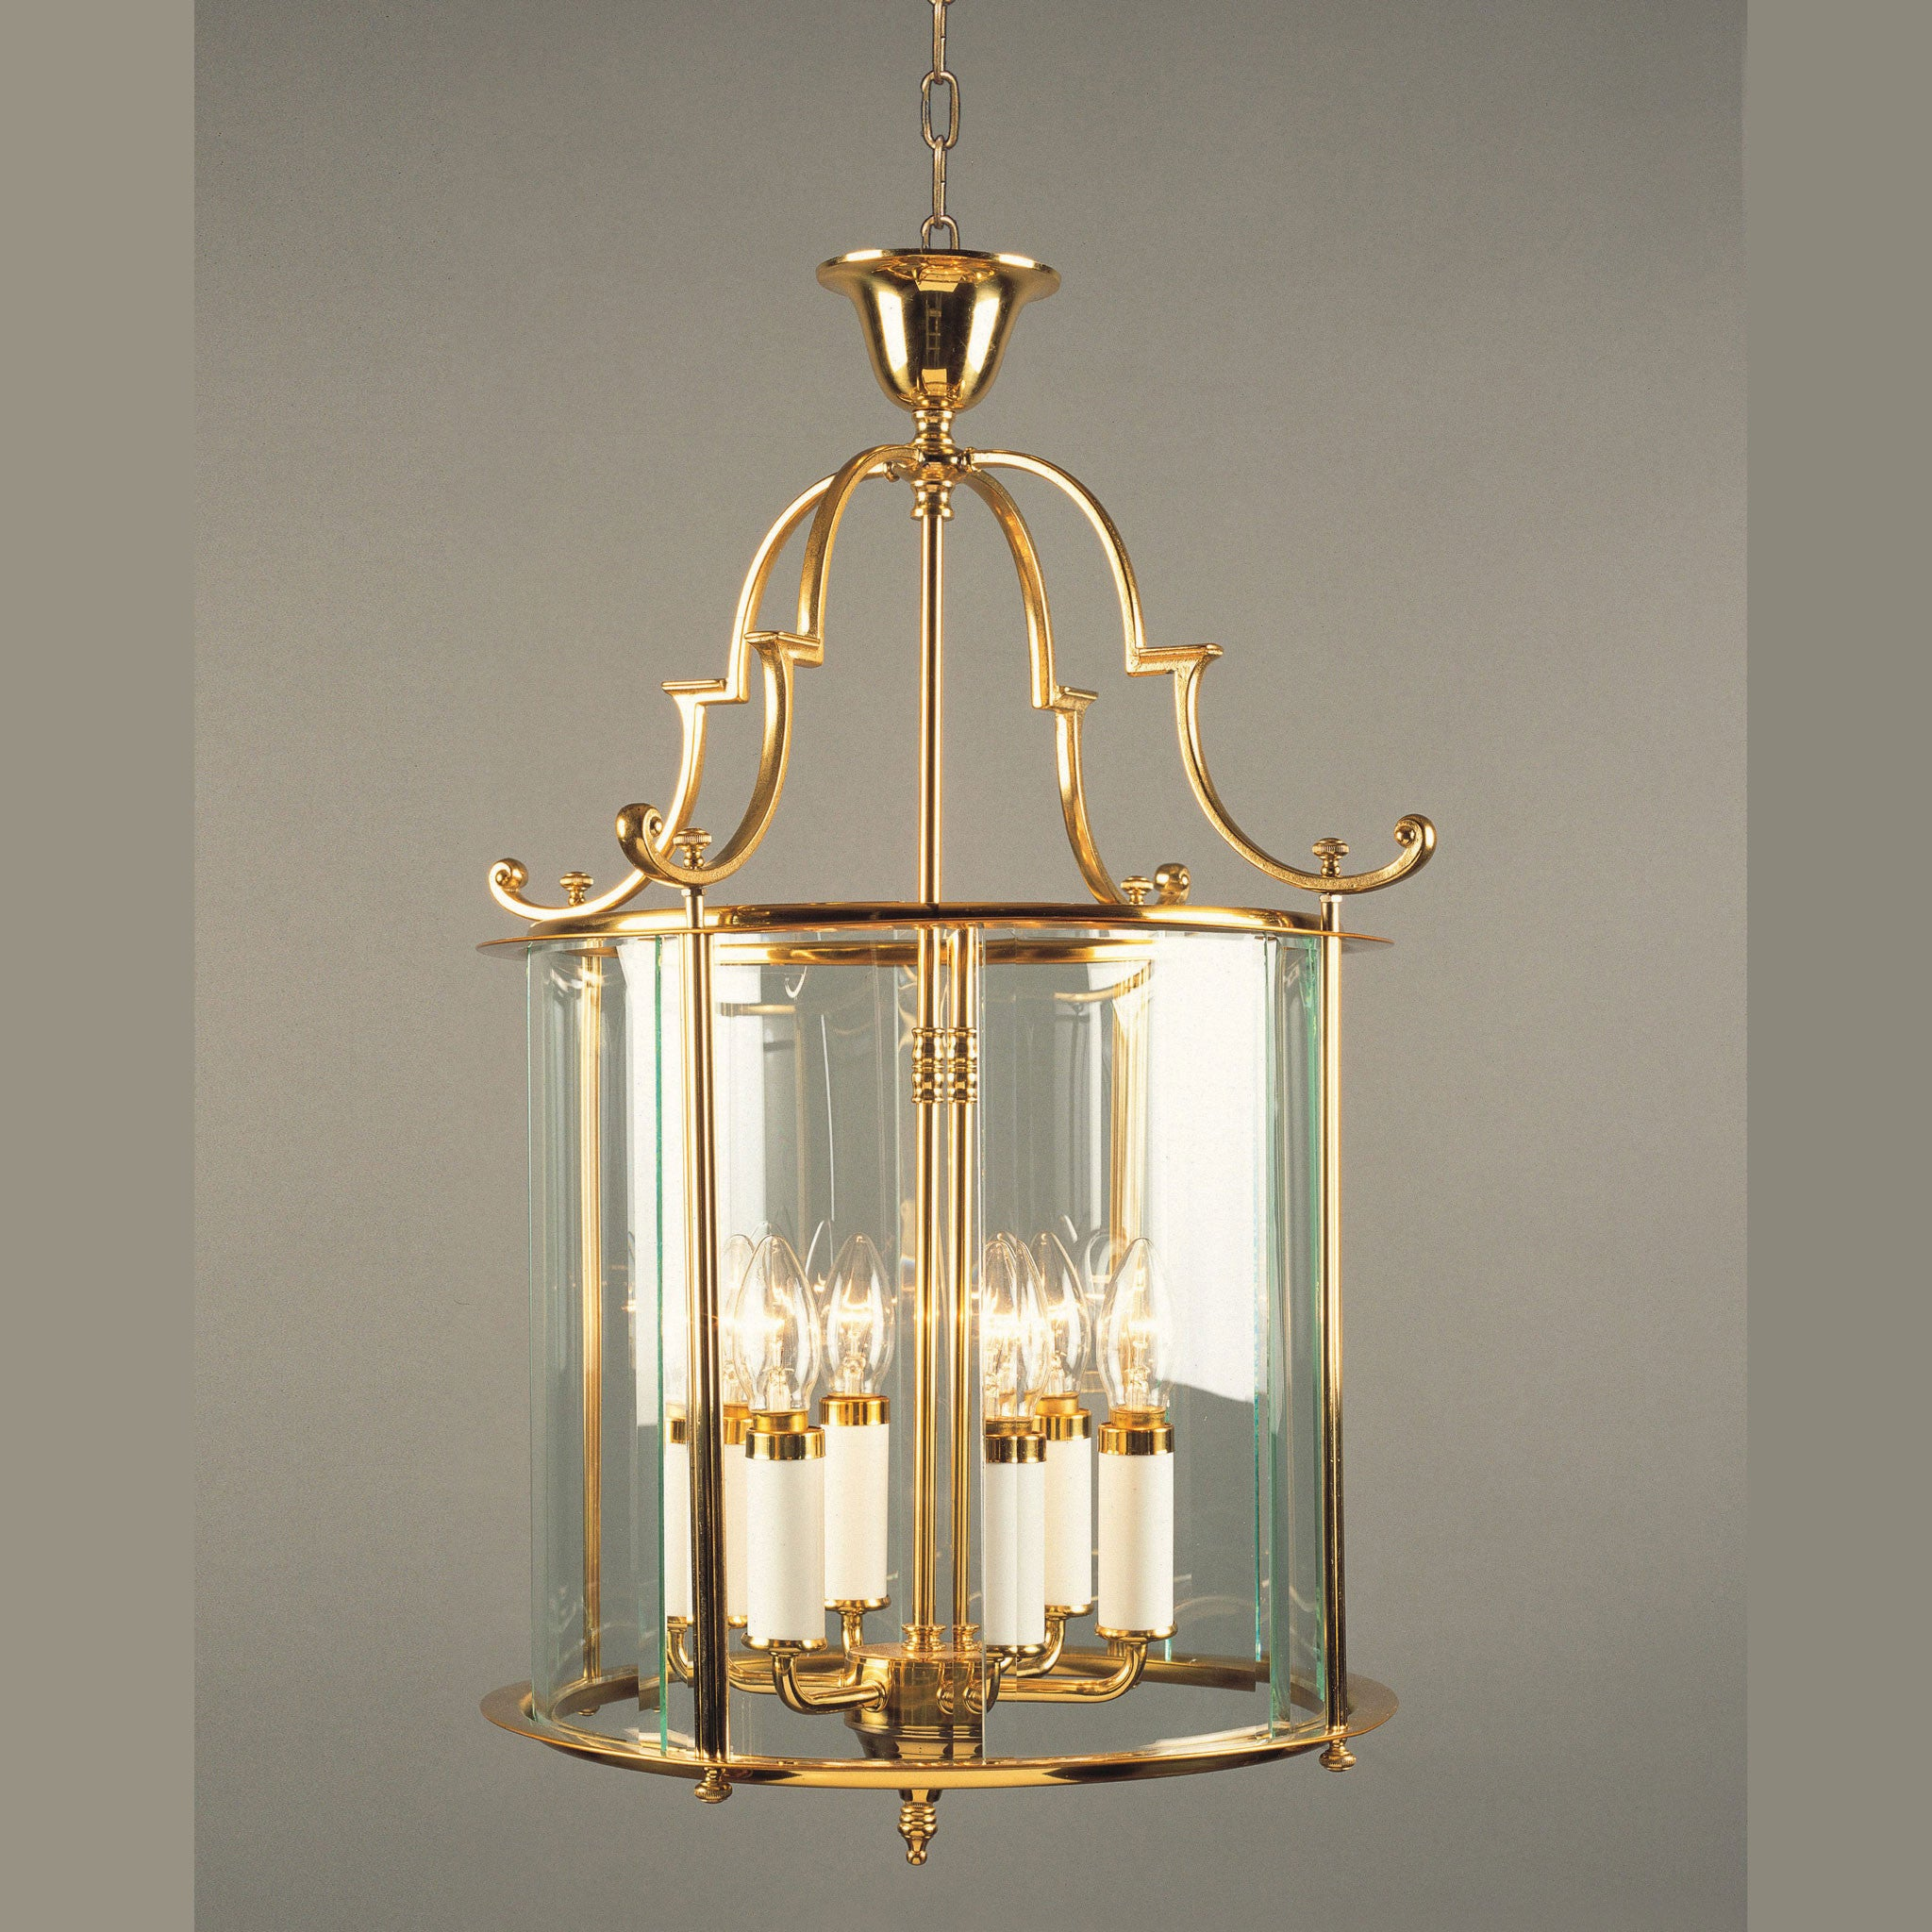 Impex Colchester 6 Light Glass Lantern Polished Brass – Brass and Glass Chandelier